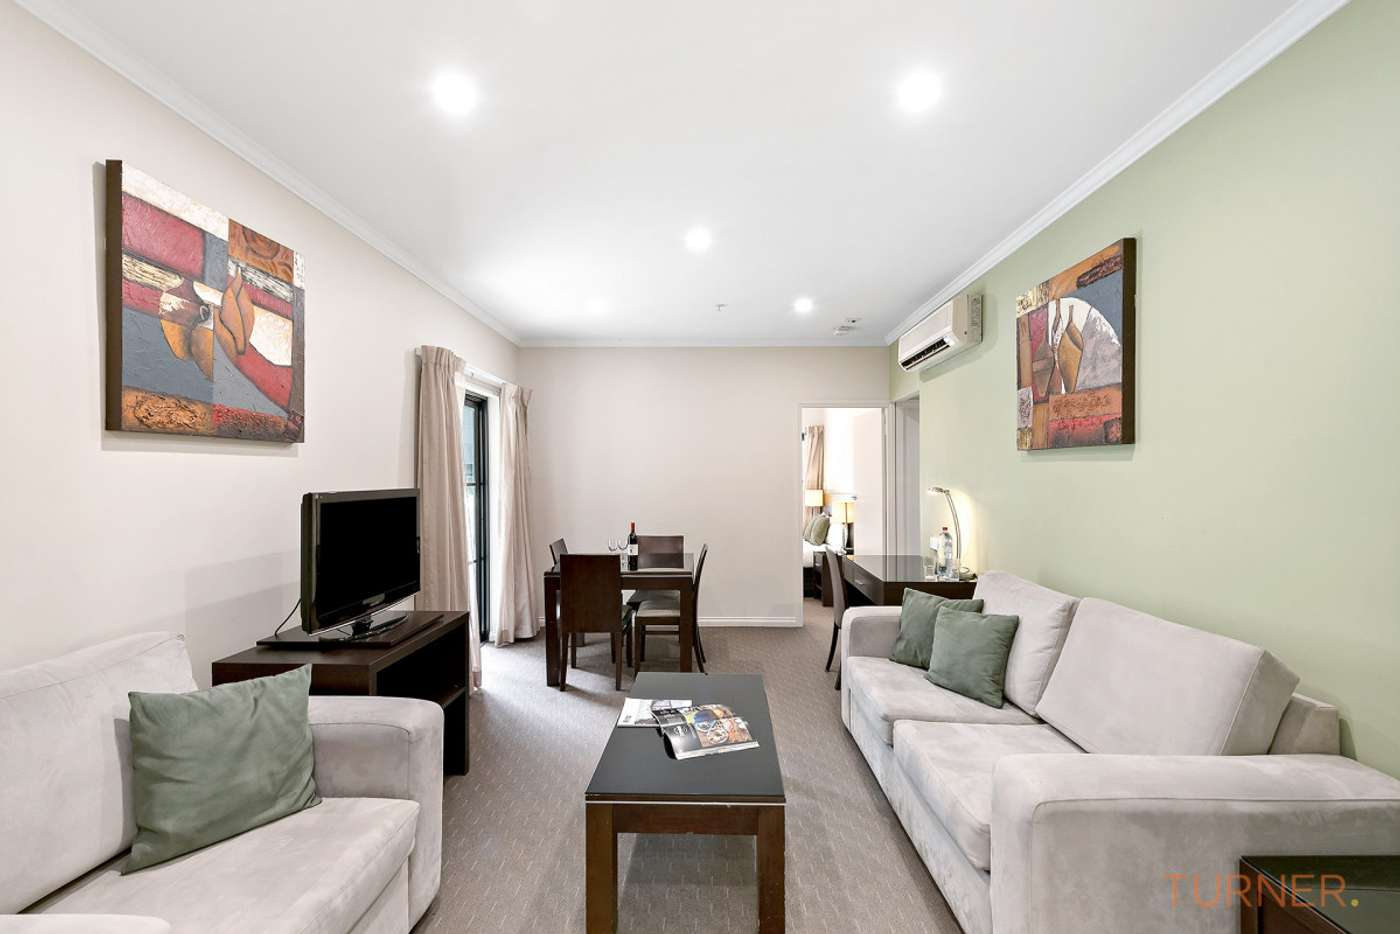 Main view of Homely apartment listing, 107/88 Frome Street, Adelaide SA 5000